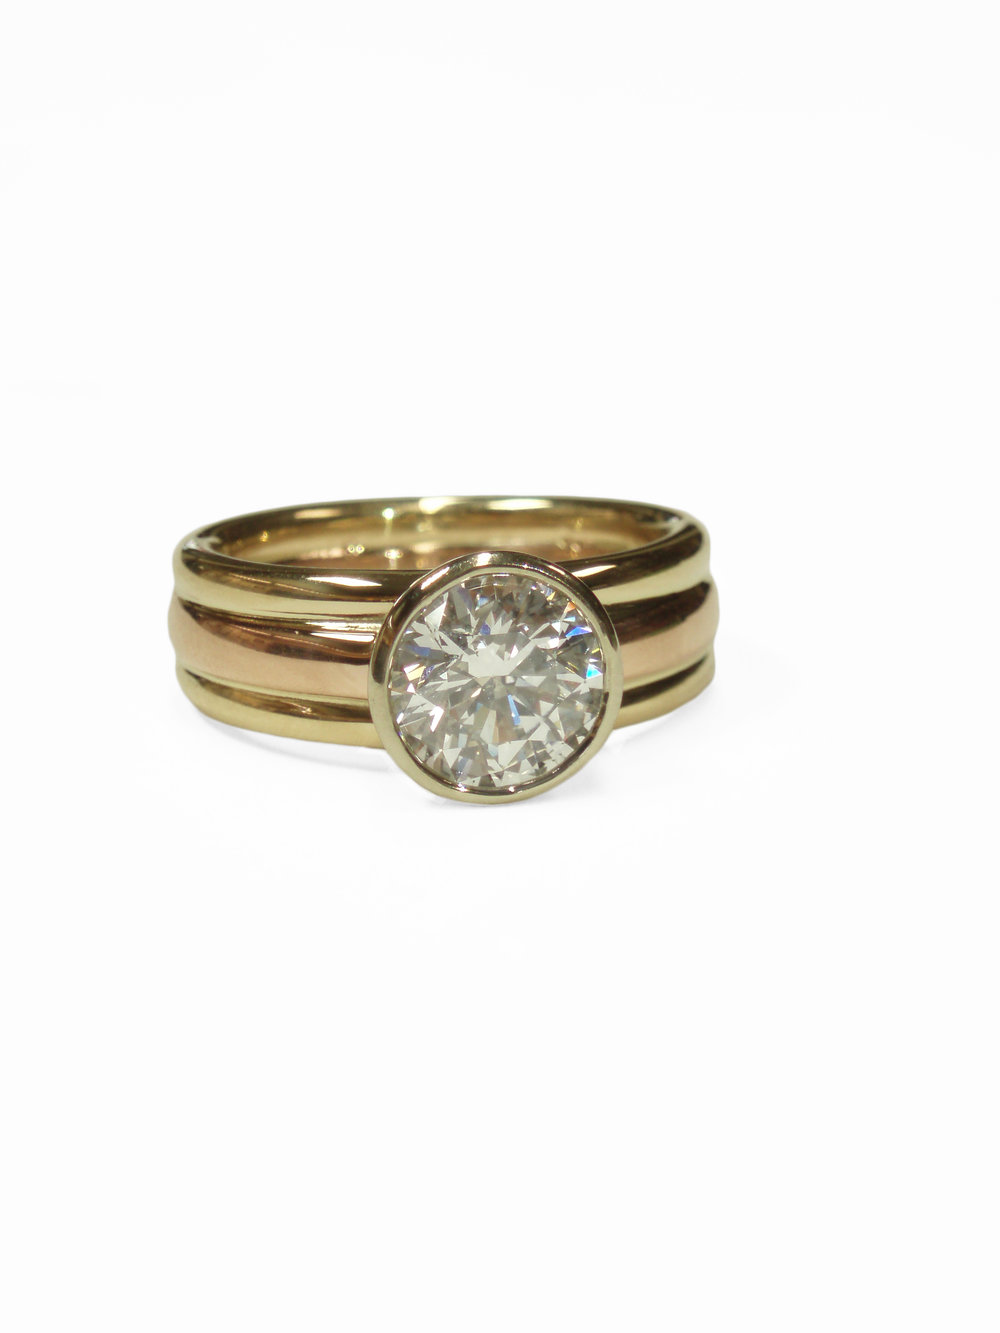 rosegold-yellowgold dia. ring.jpg